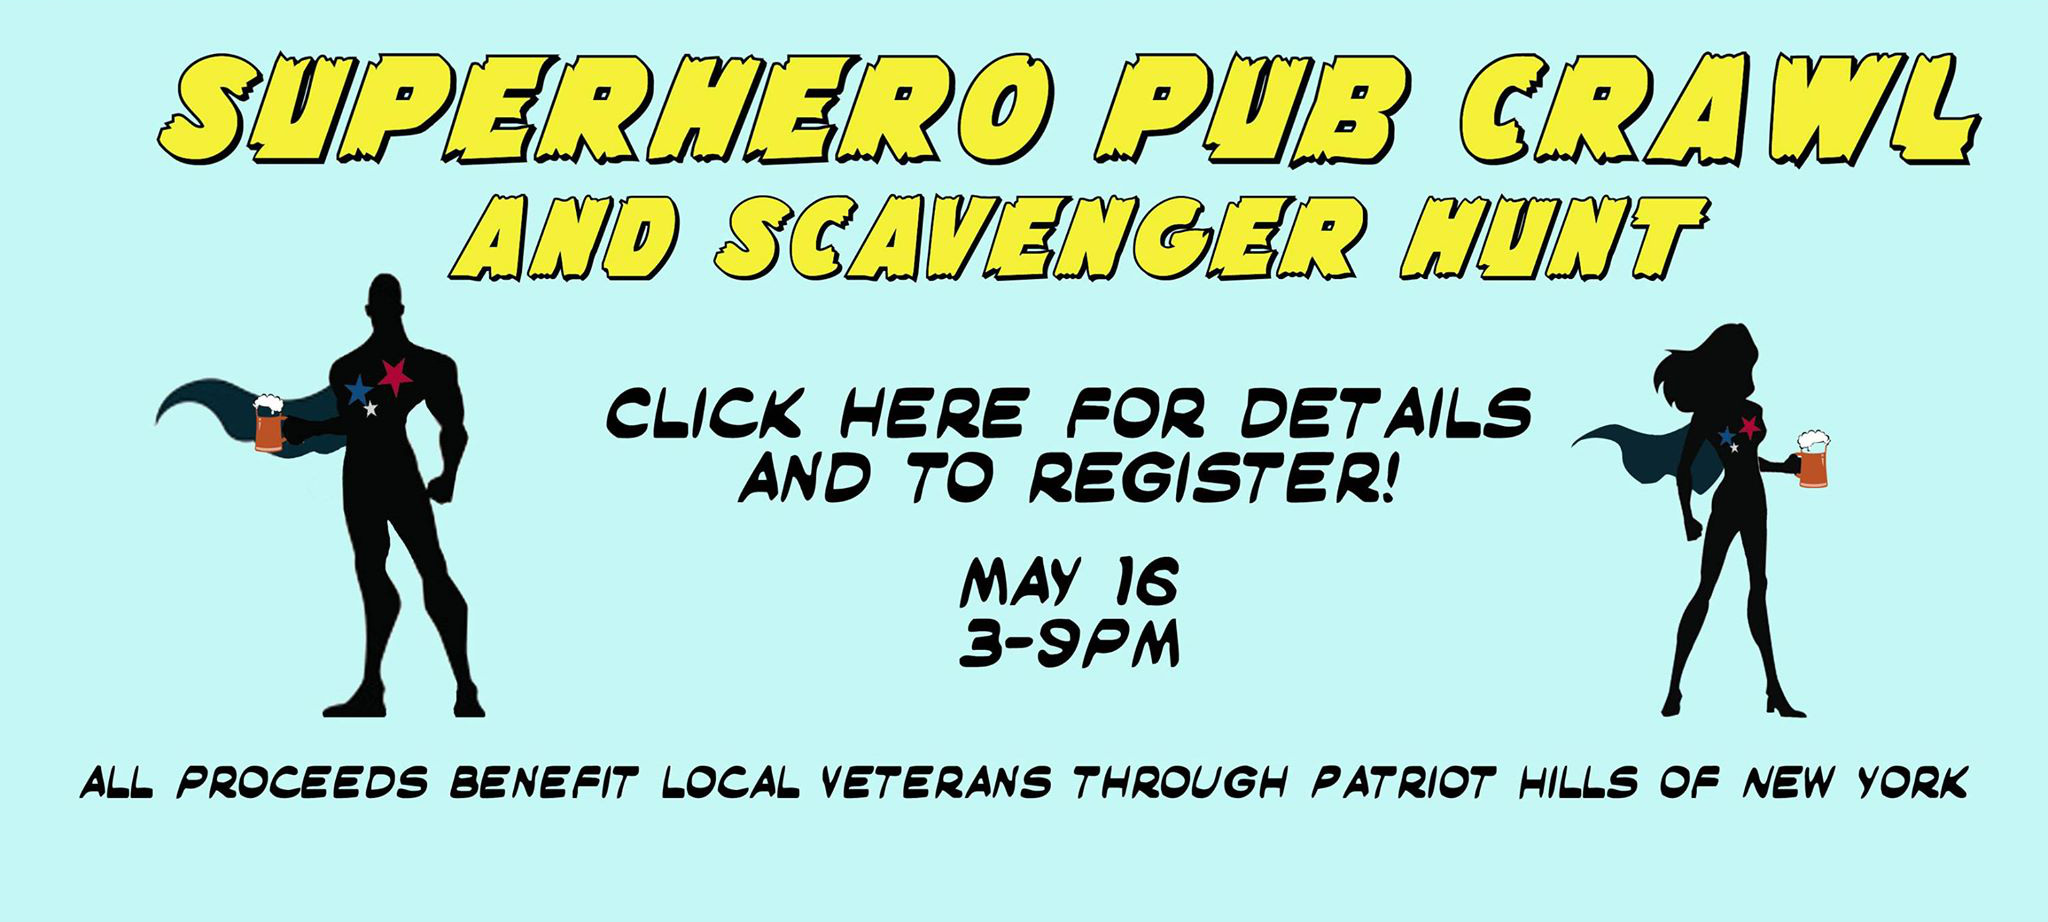 Superhero Pub Crawl May 16 3-9 PM click here to learn more and register